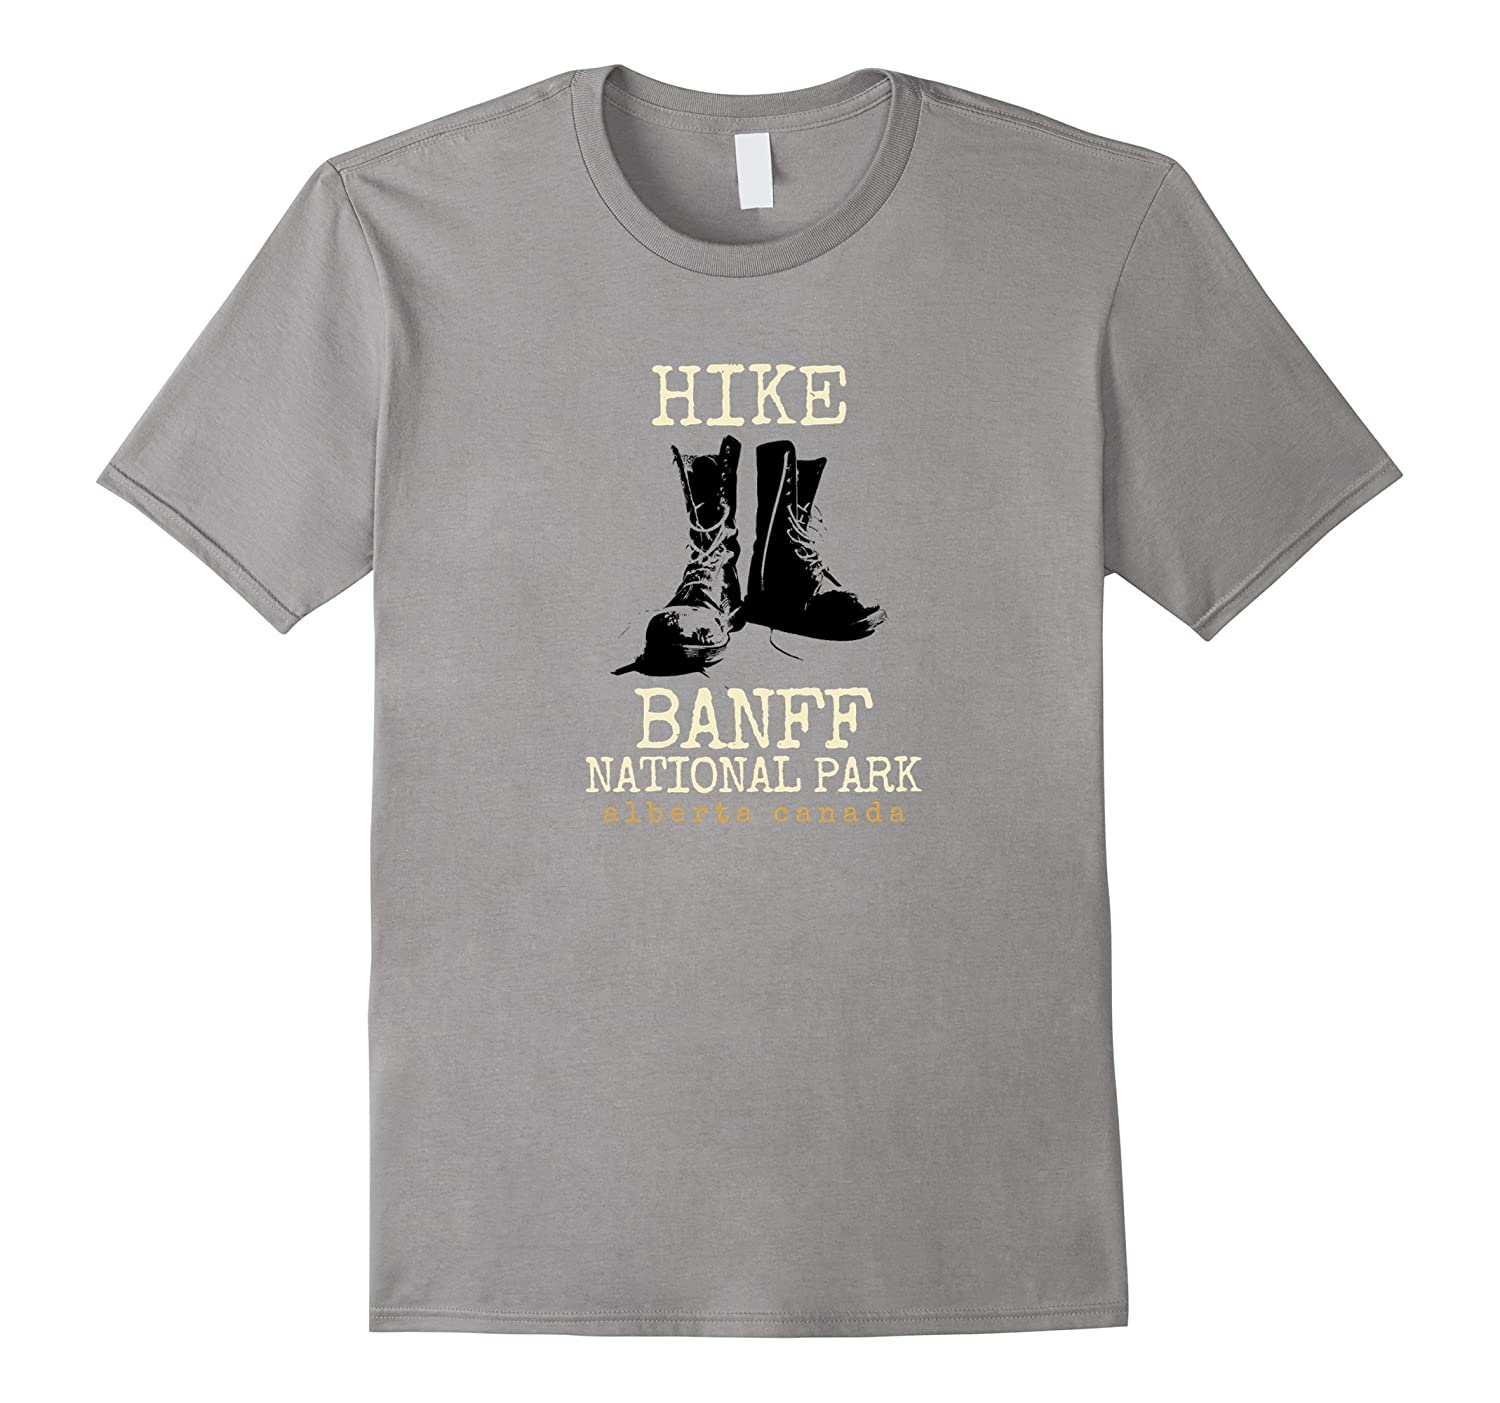 Banff National Park T-Shirt, Hike Banff Alberta Canada Shirt-TH